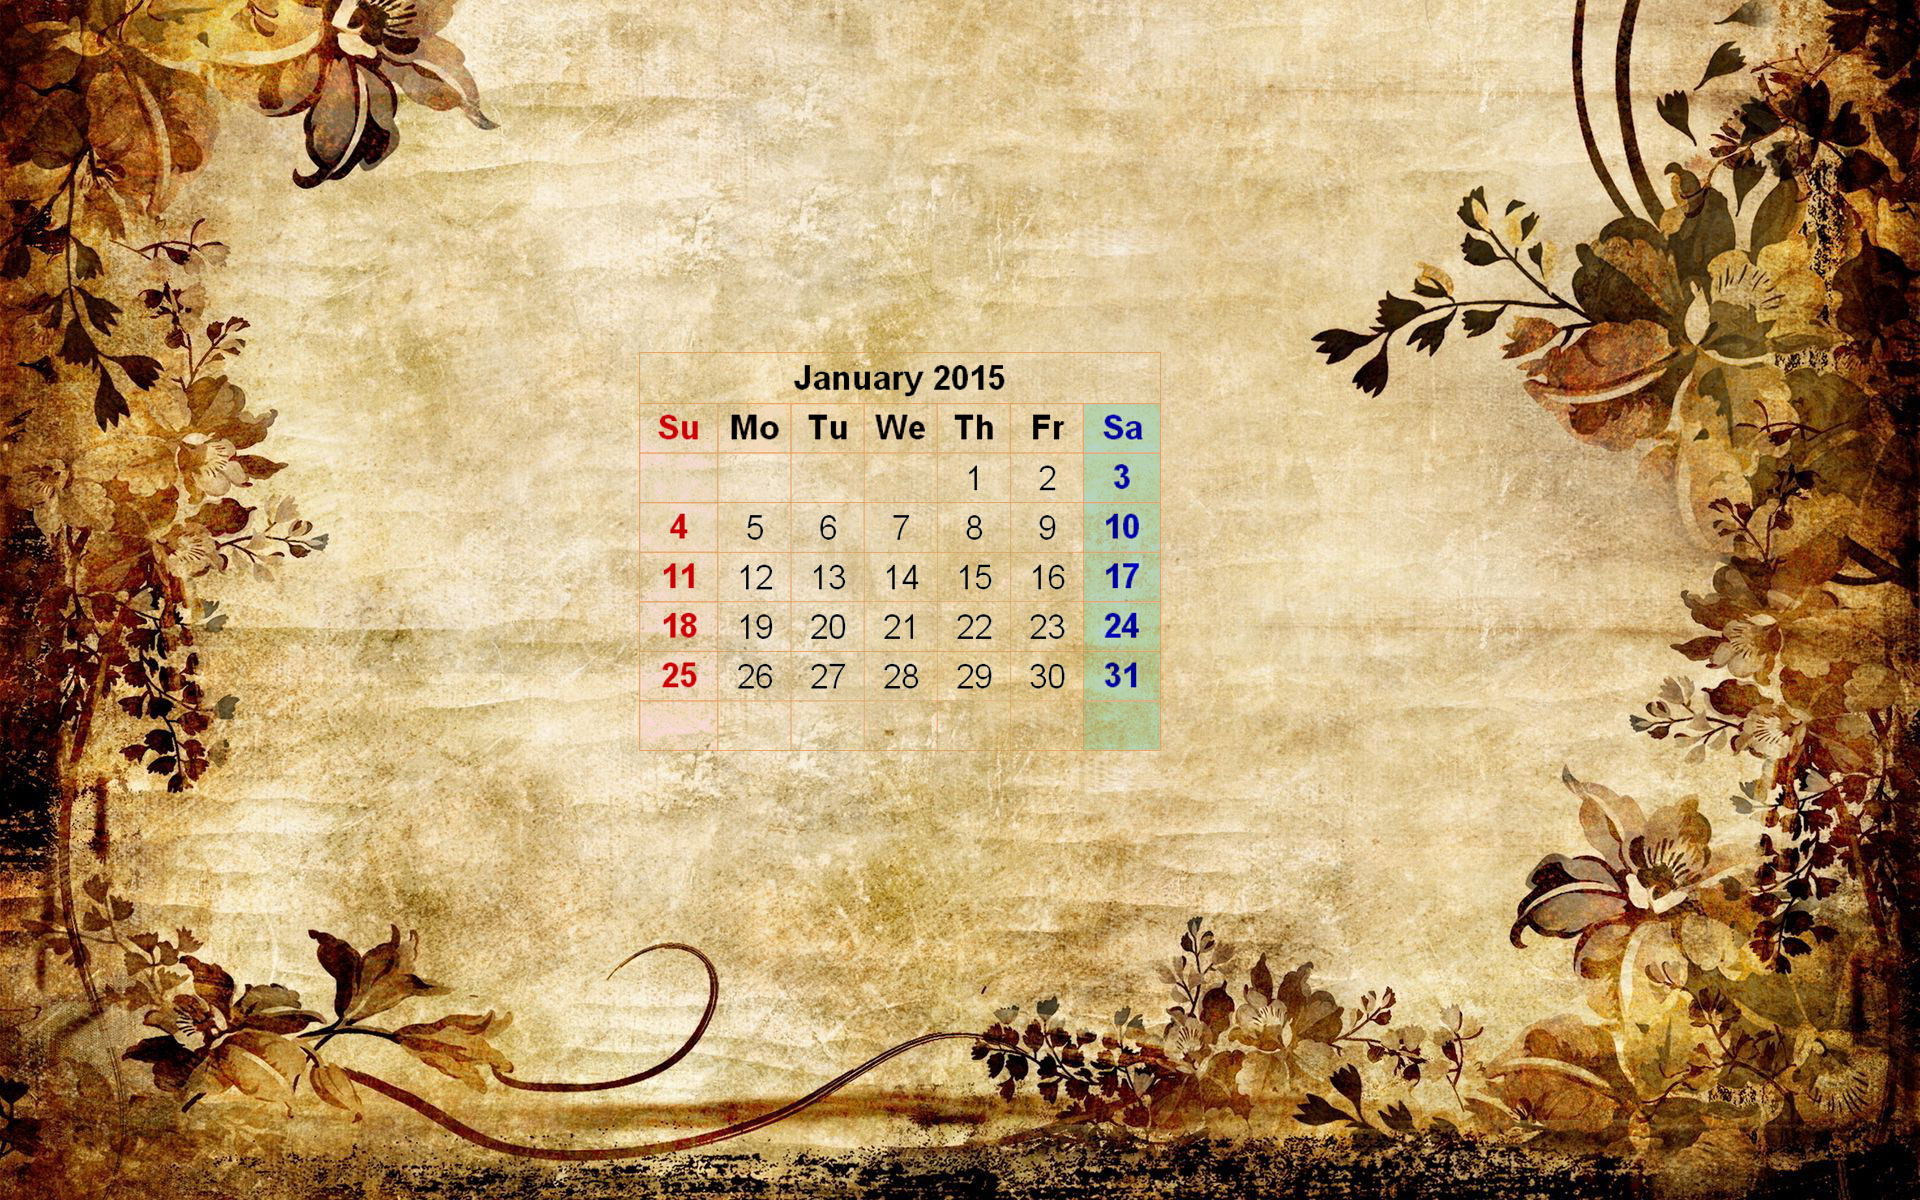 January 2015 Wallpaper Calendar New Calendar Template Site 1920x1200